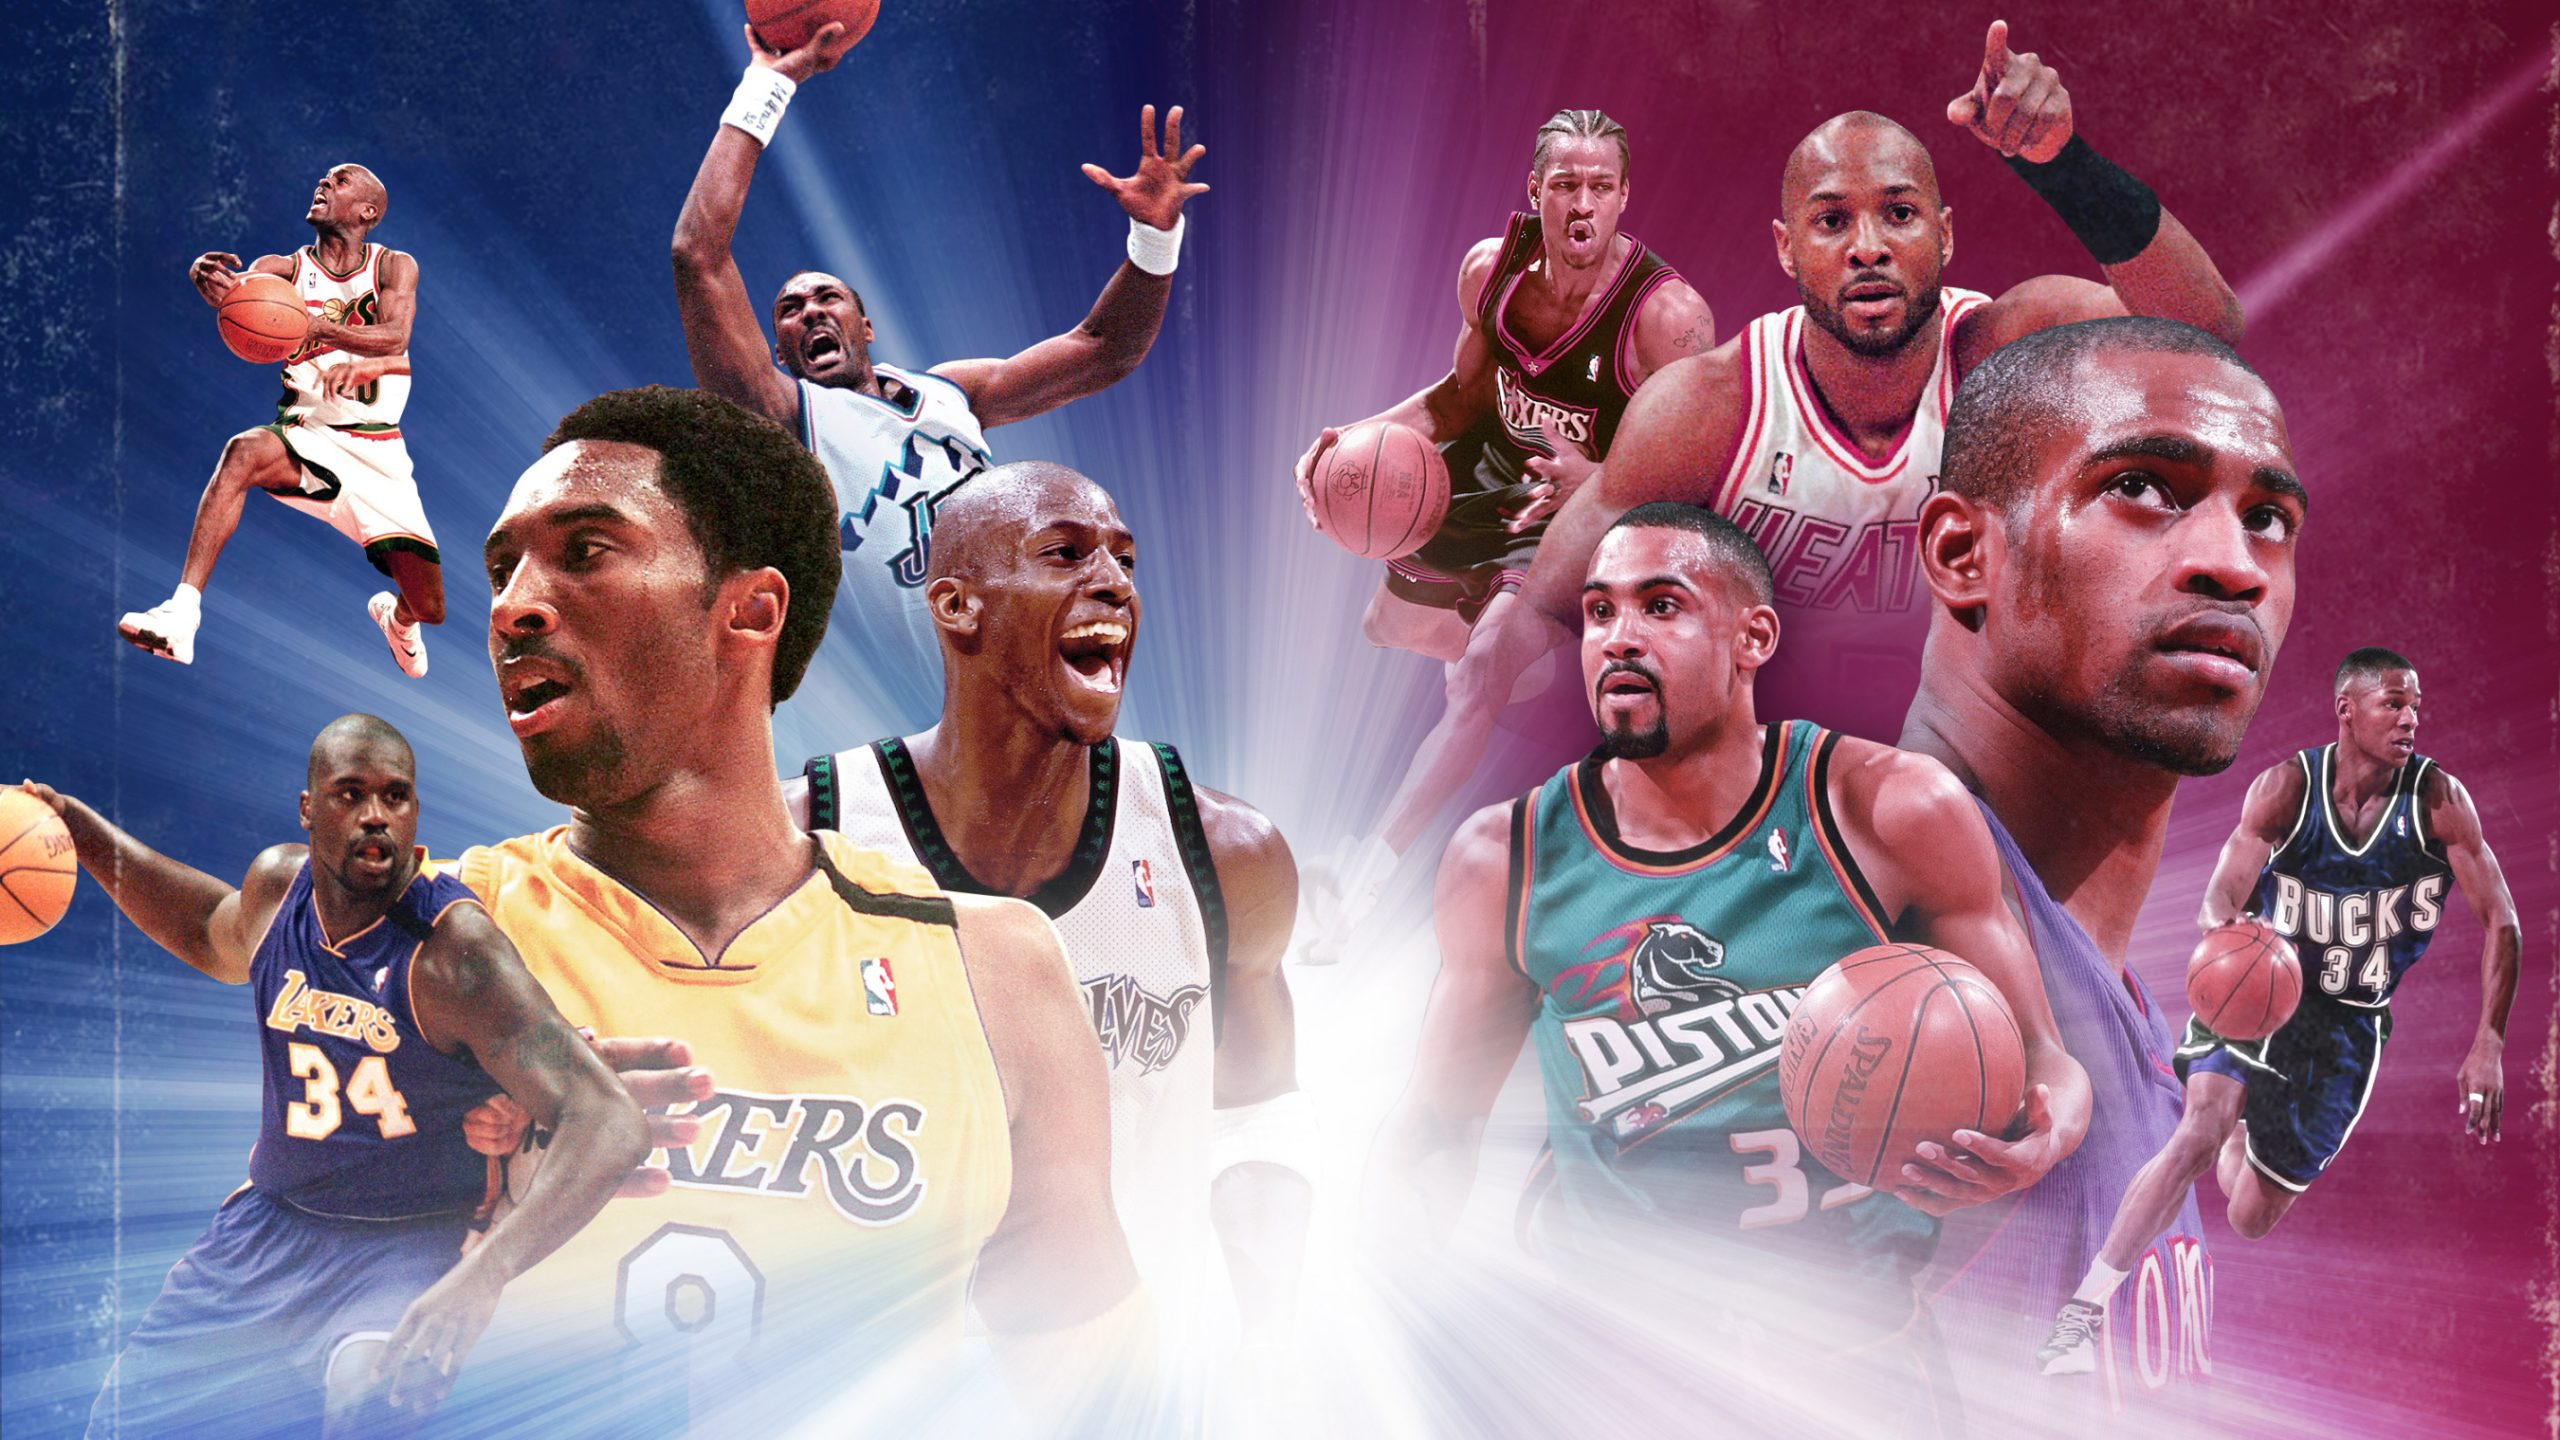 Vegas Odds: Gambling on NBA Basketball! HOW? Read to know